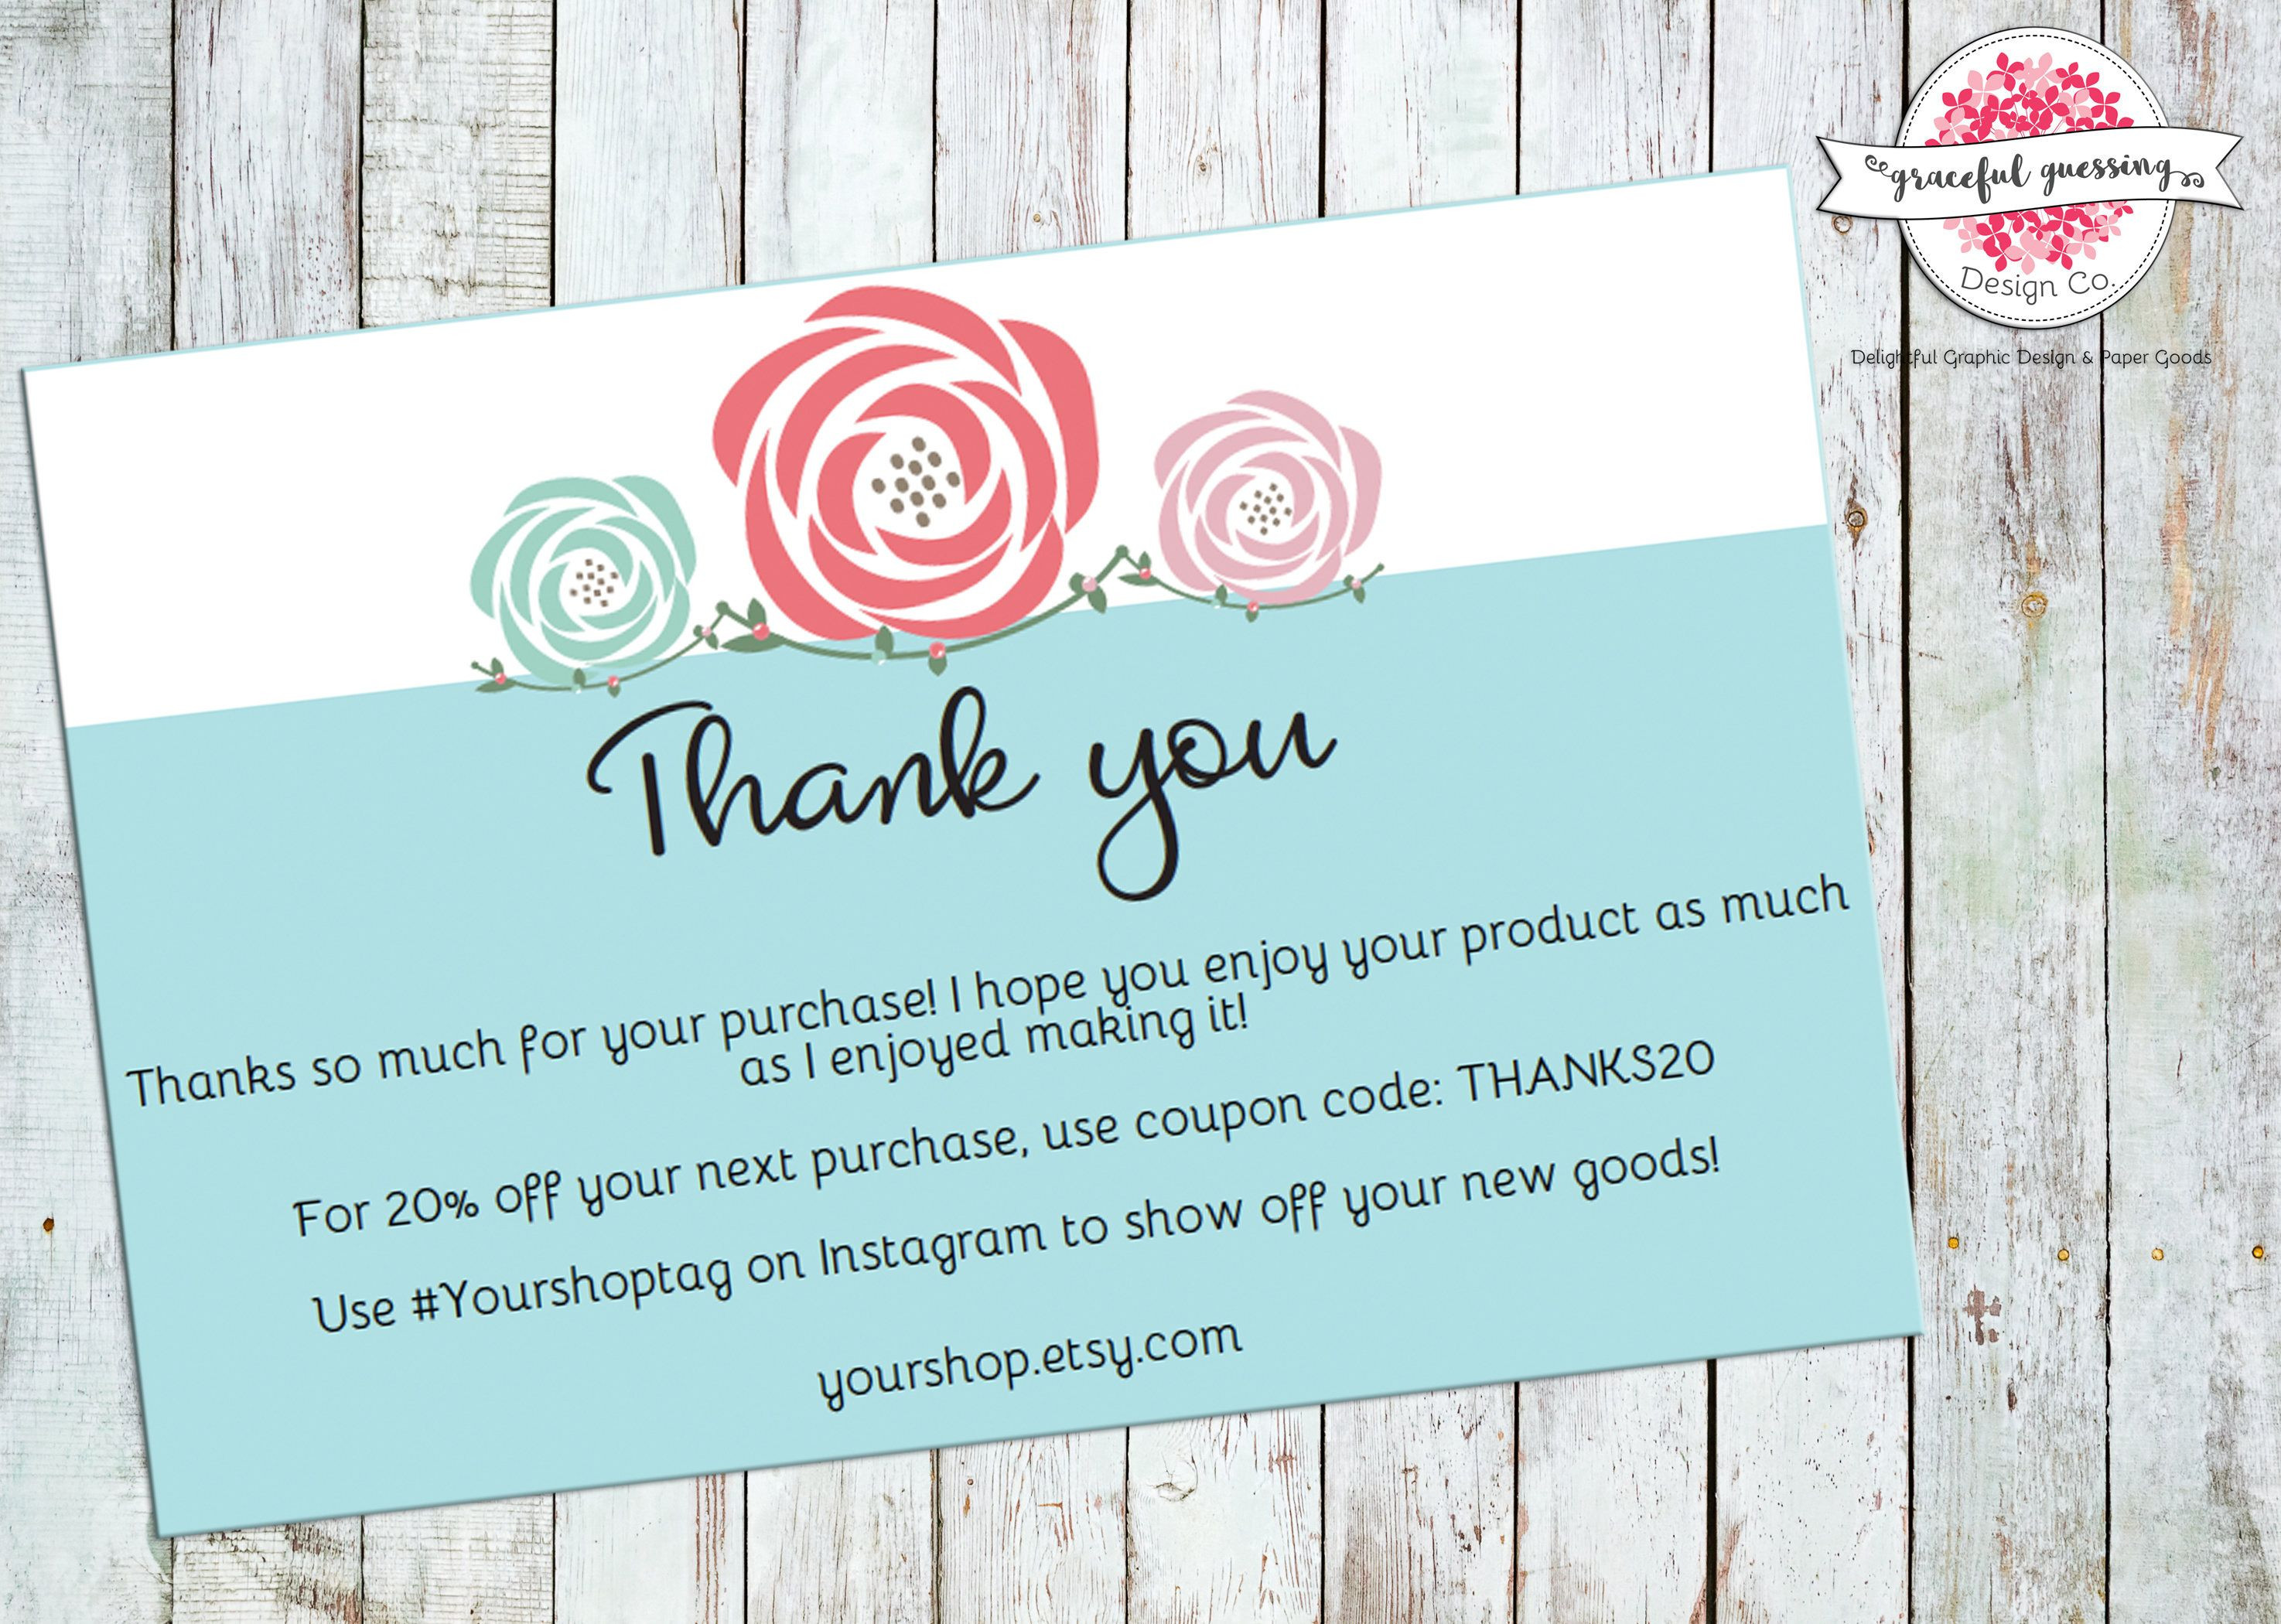 Order Thank You Cards Printable Etsy Shop Cards Package Insert Cards Small Business Thank You Cards Floral Order Thank You PDF by